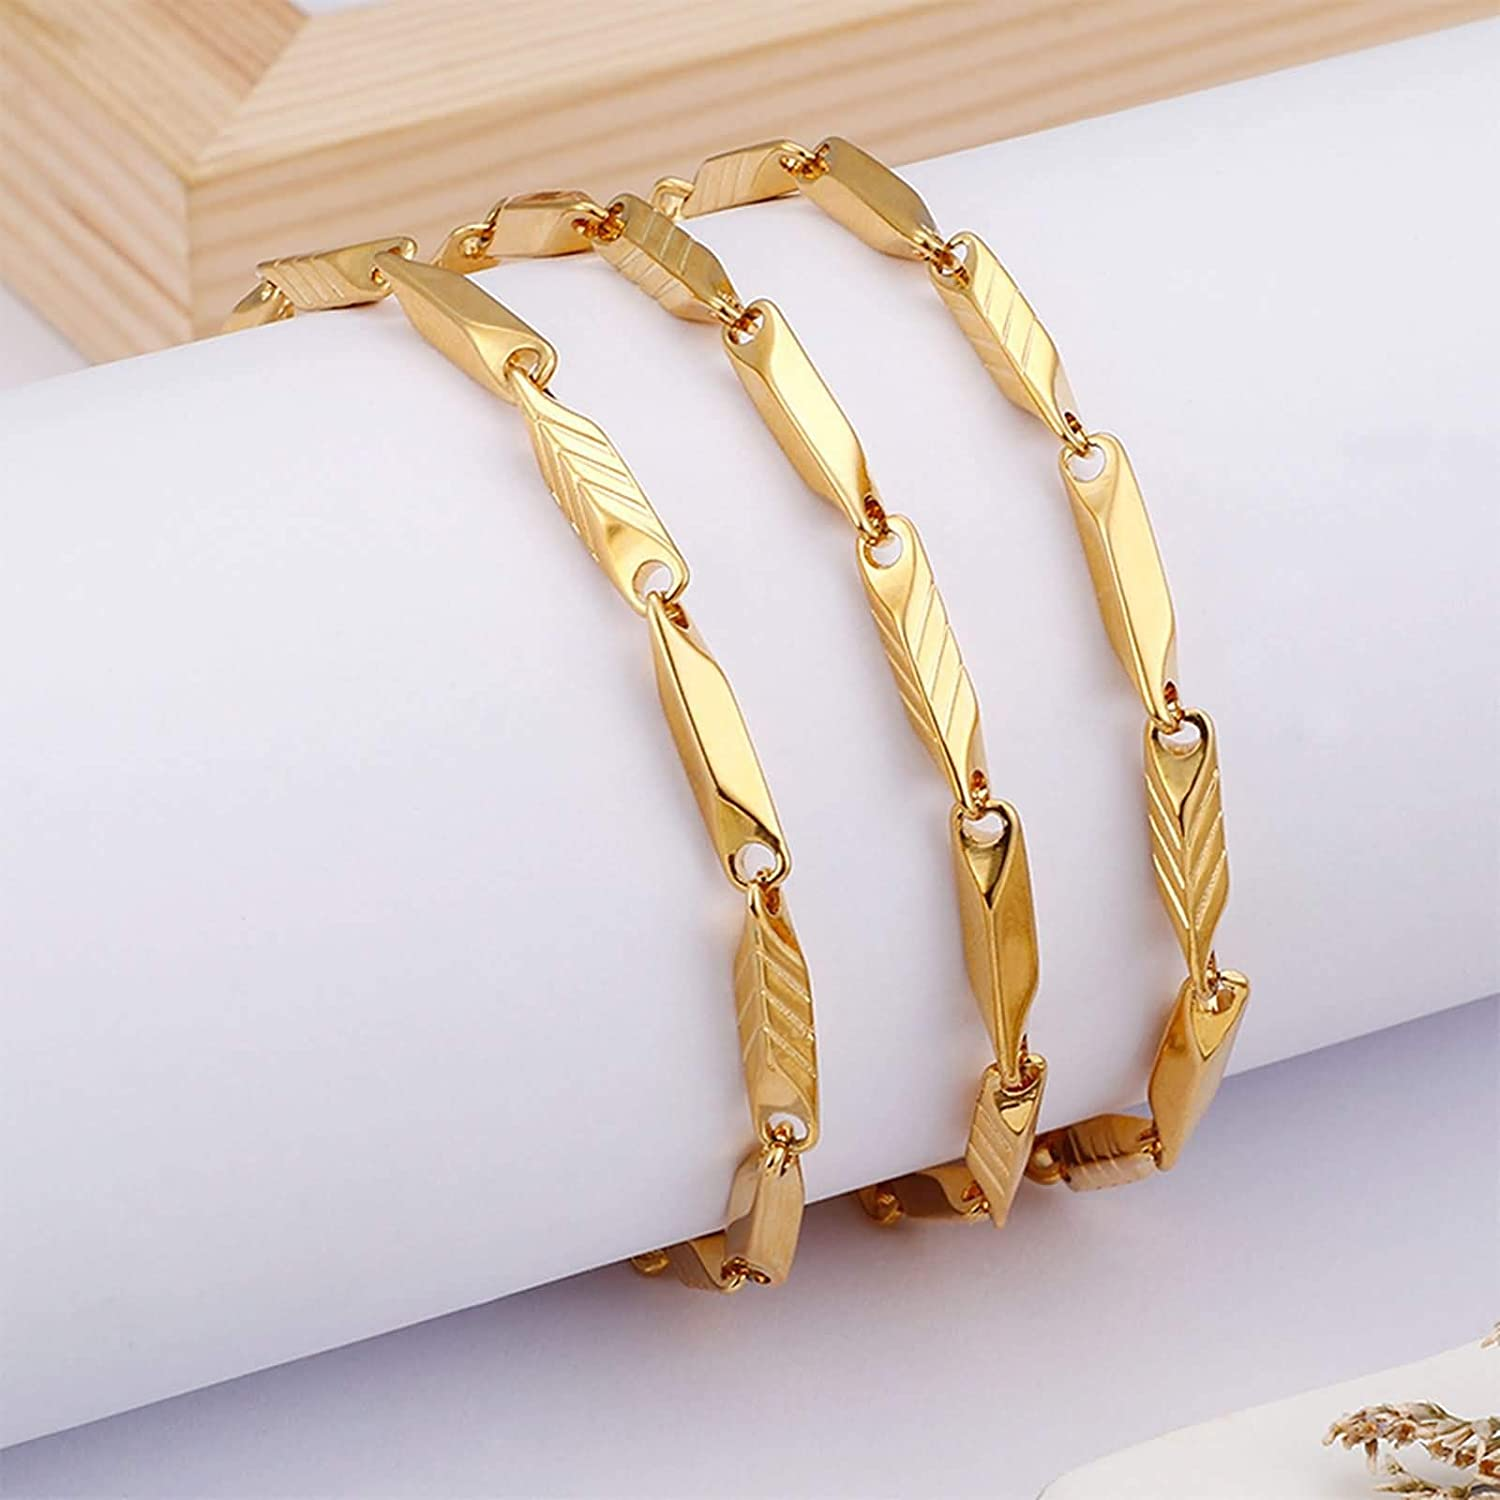 Gnzoe 4MM Stainless Steel Chain Necklace for Men Gold Bar Chain Gold Link Chain Necklace Length 24IN